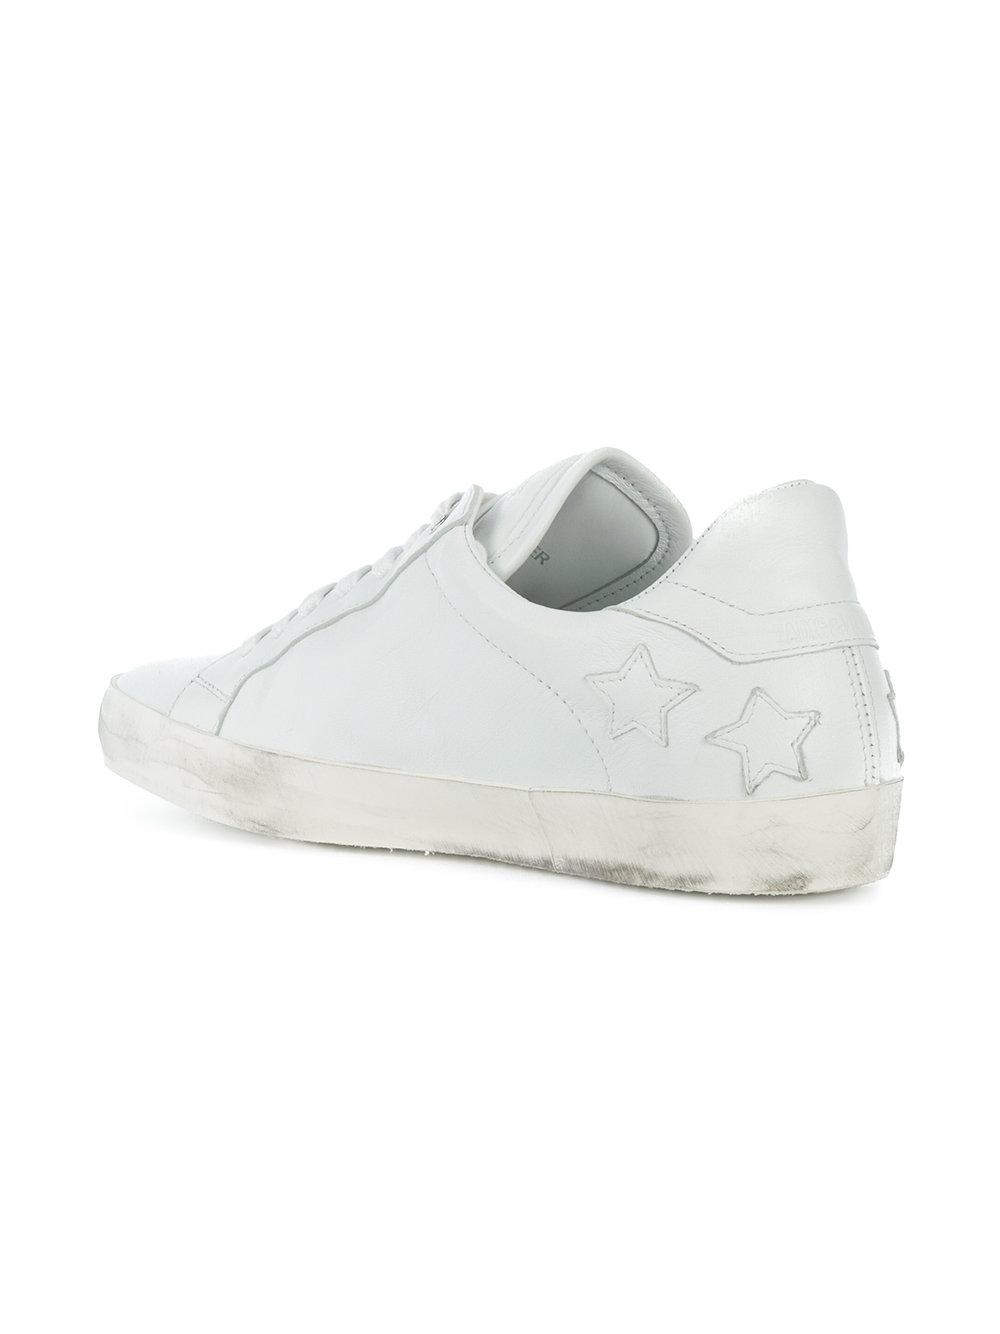 7f3e7ae087c Voltaire Patches Lyst In White Sneakers Zadigamp  Star LqUzMGjSVp